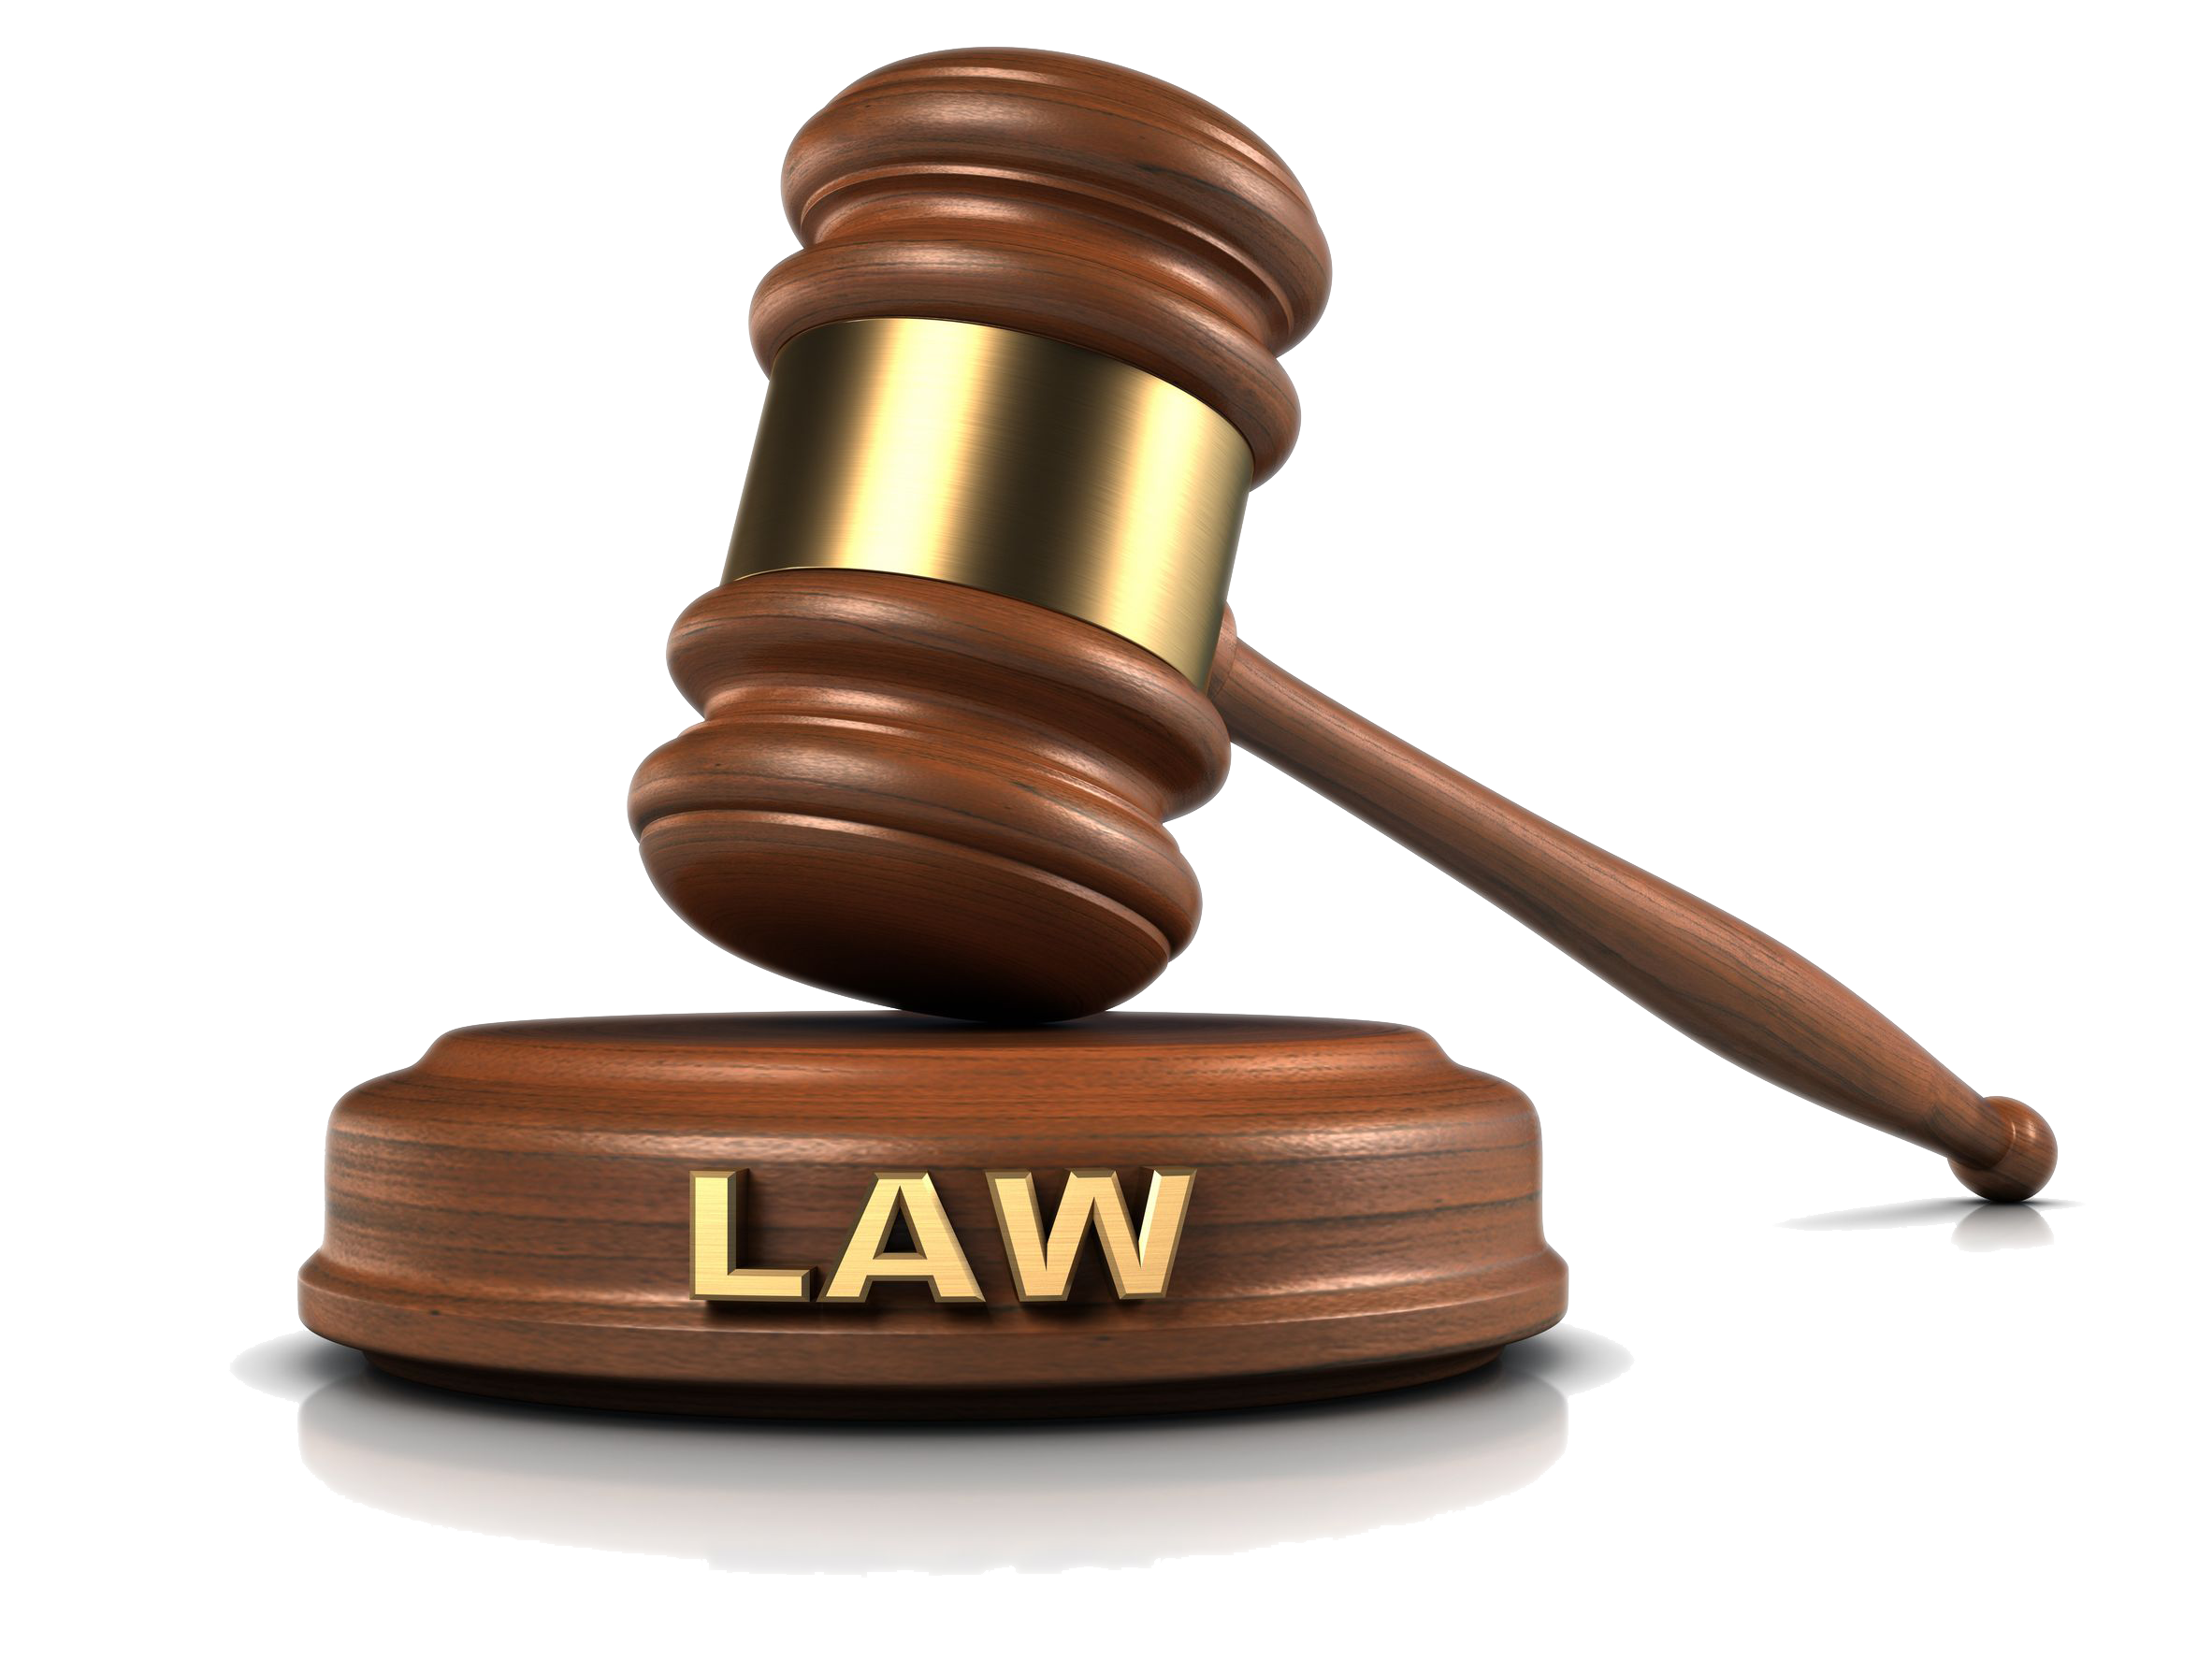 Court Hammer Free Png Image - Law Hammer, Transparent background PNG HD thumbnail